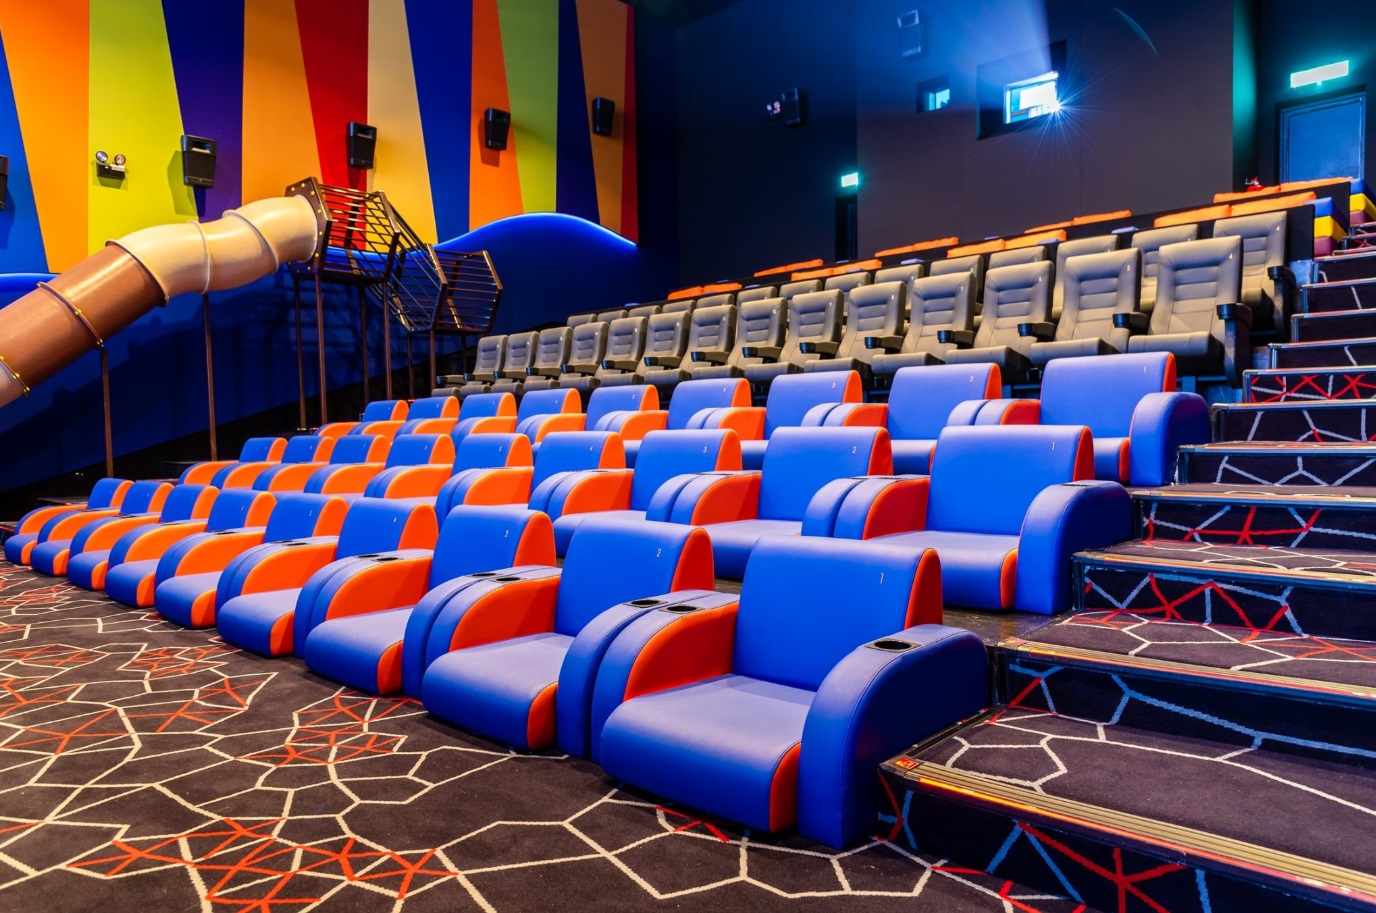 Bpdgtravels Building Memories Together Which Cinemas To Go For